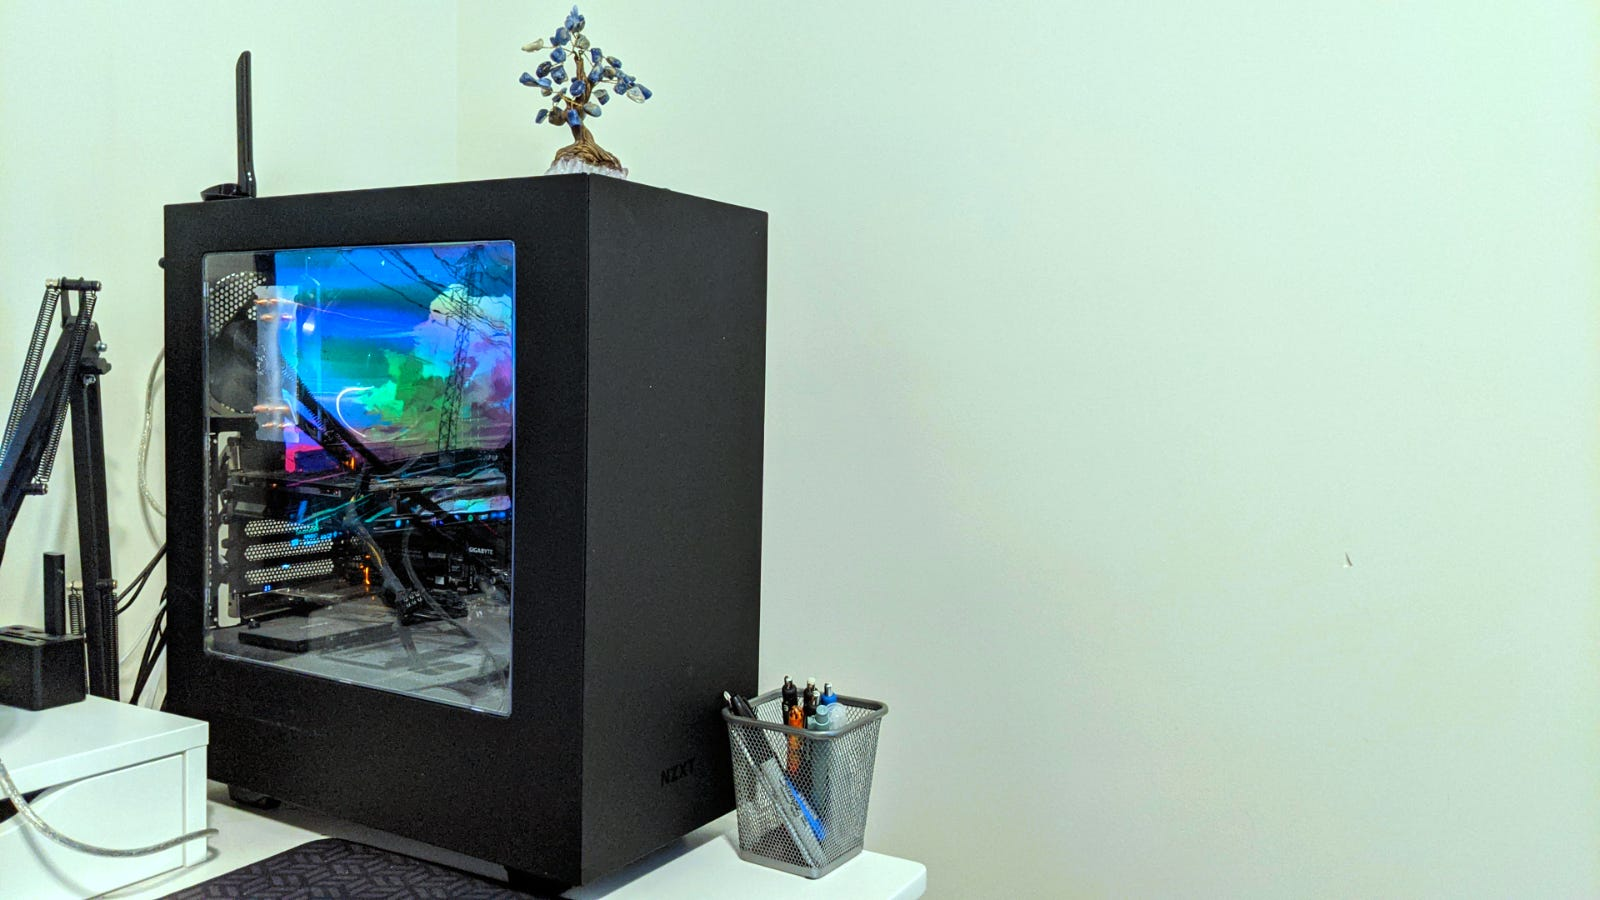 Custom computer on a desk against white wall